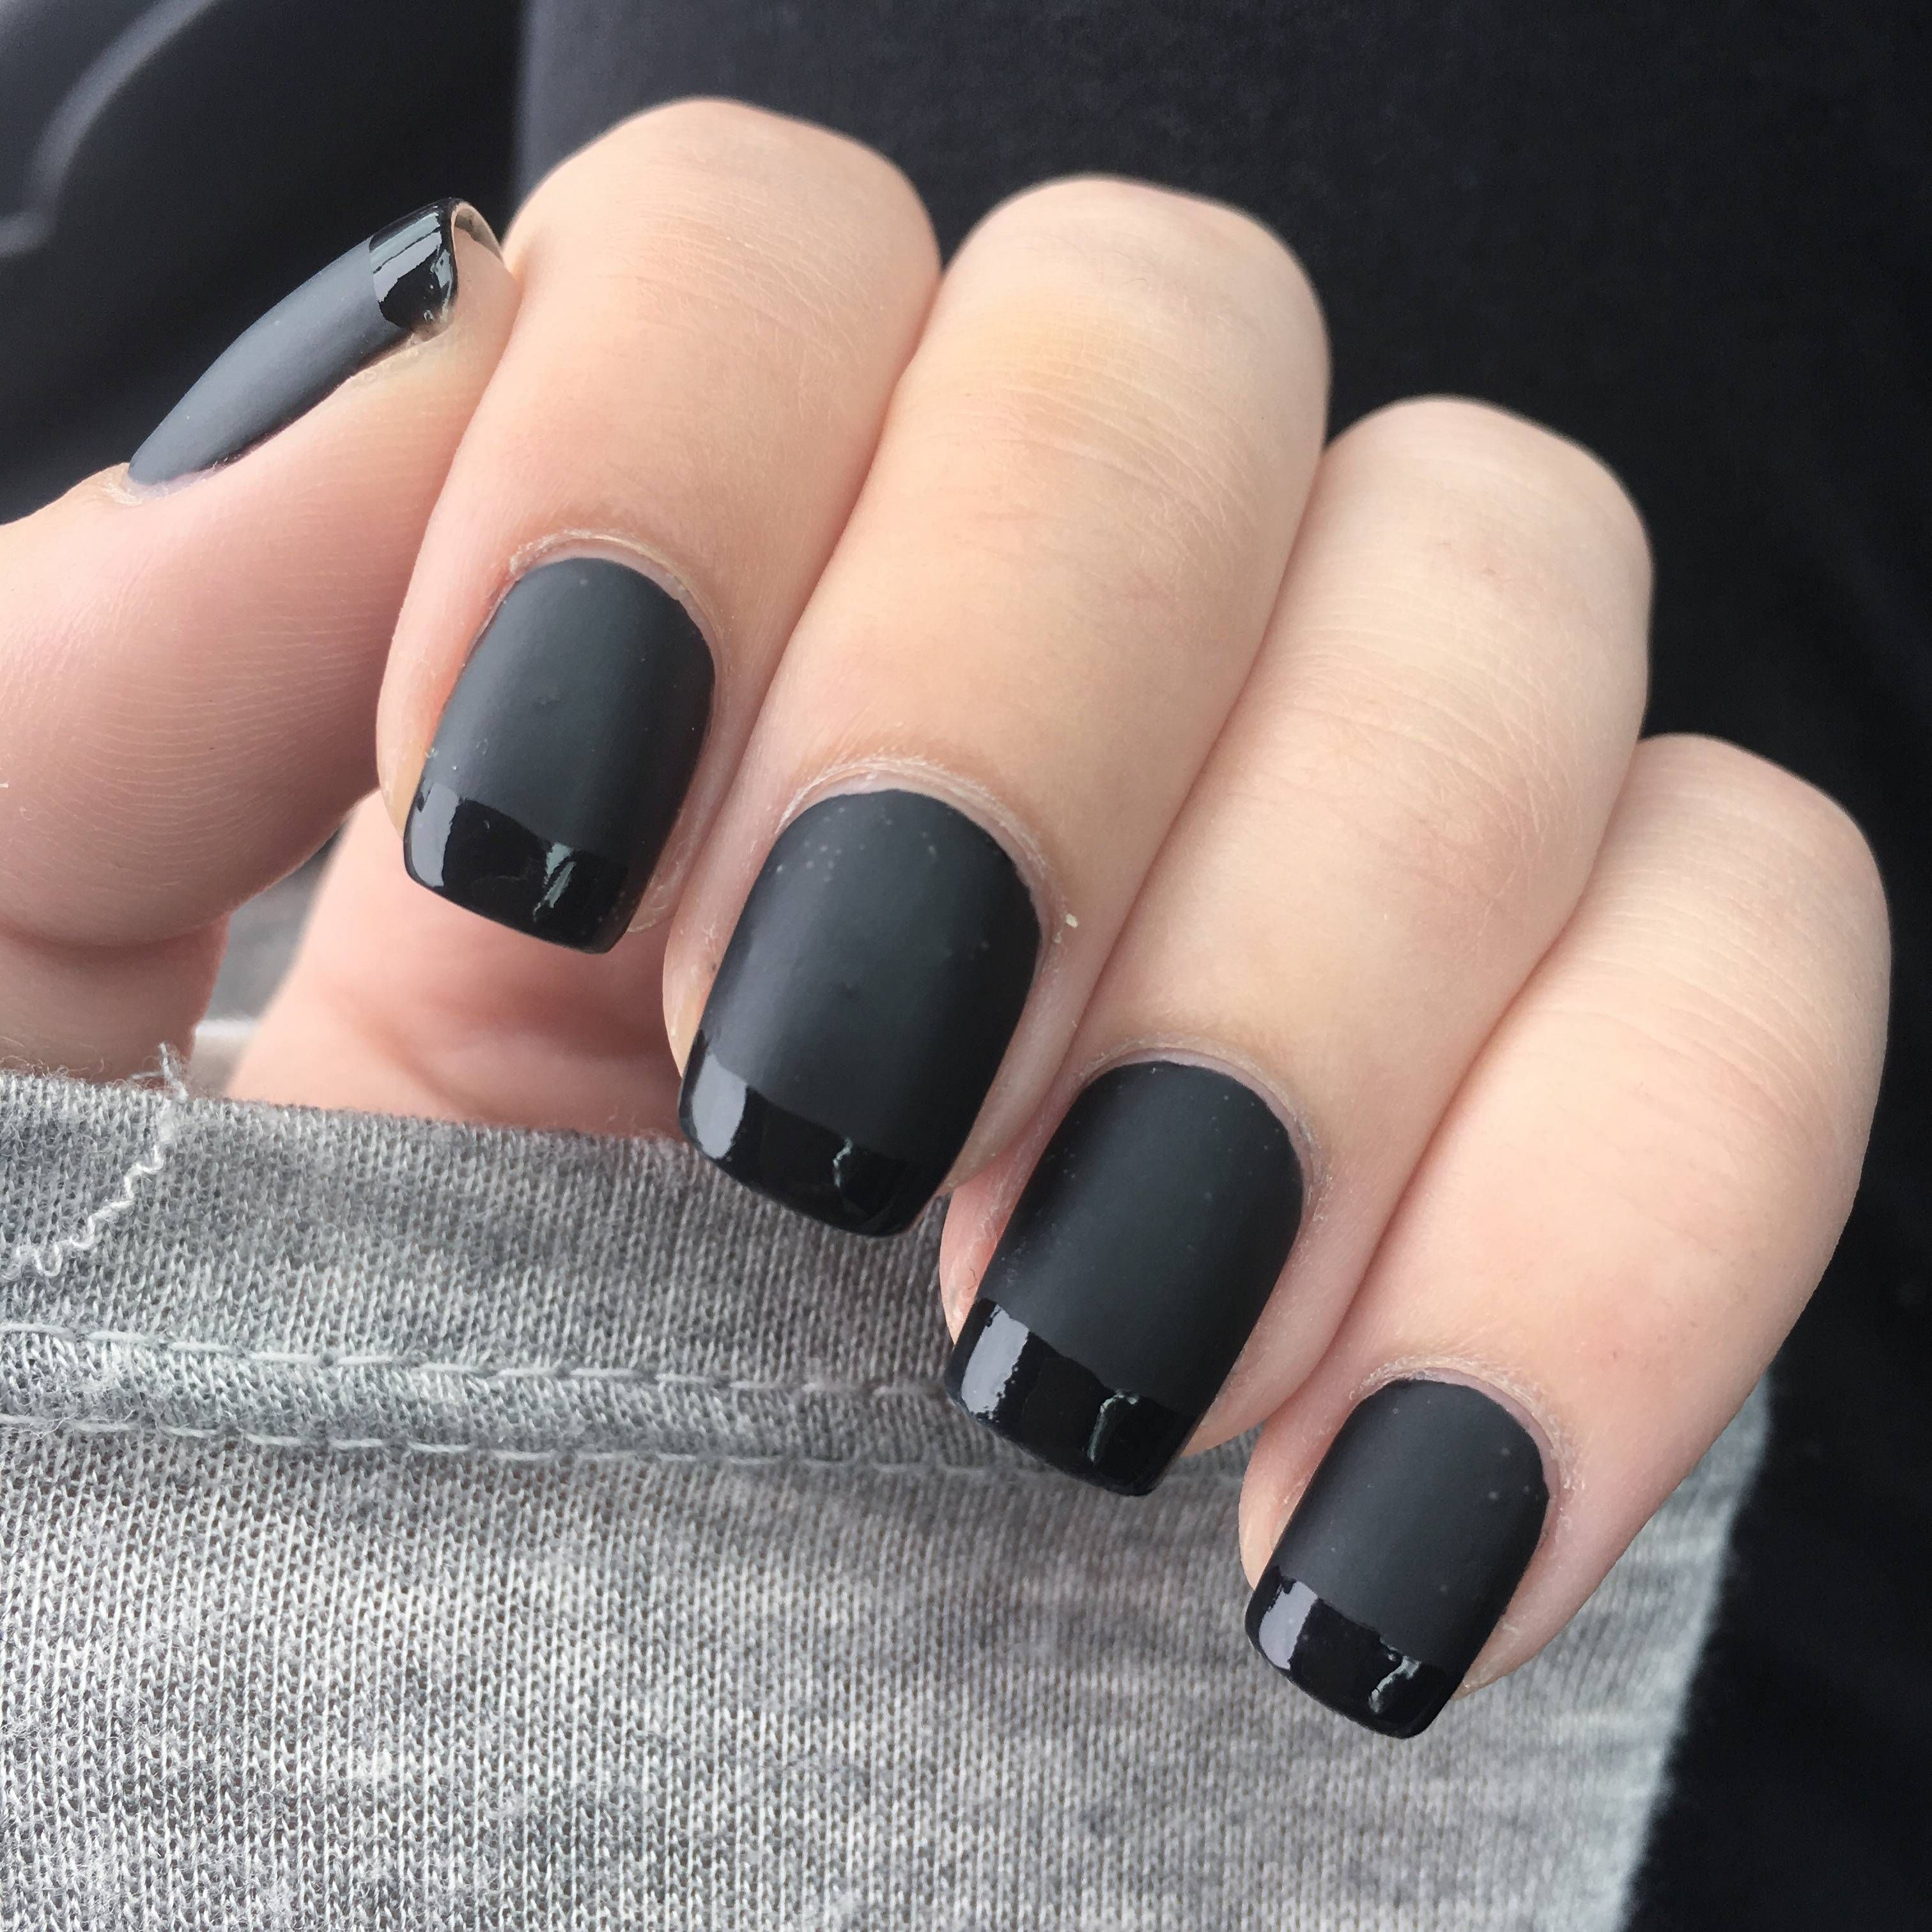 matte black with gloss tips | nailed it | Pinterest | Matte black ...